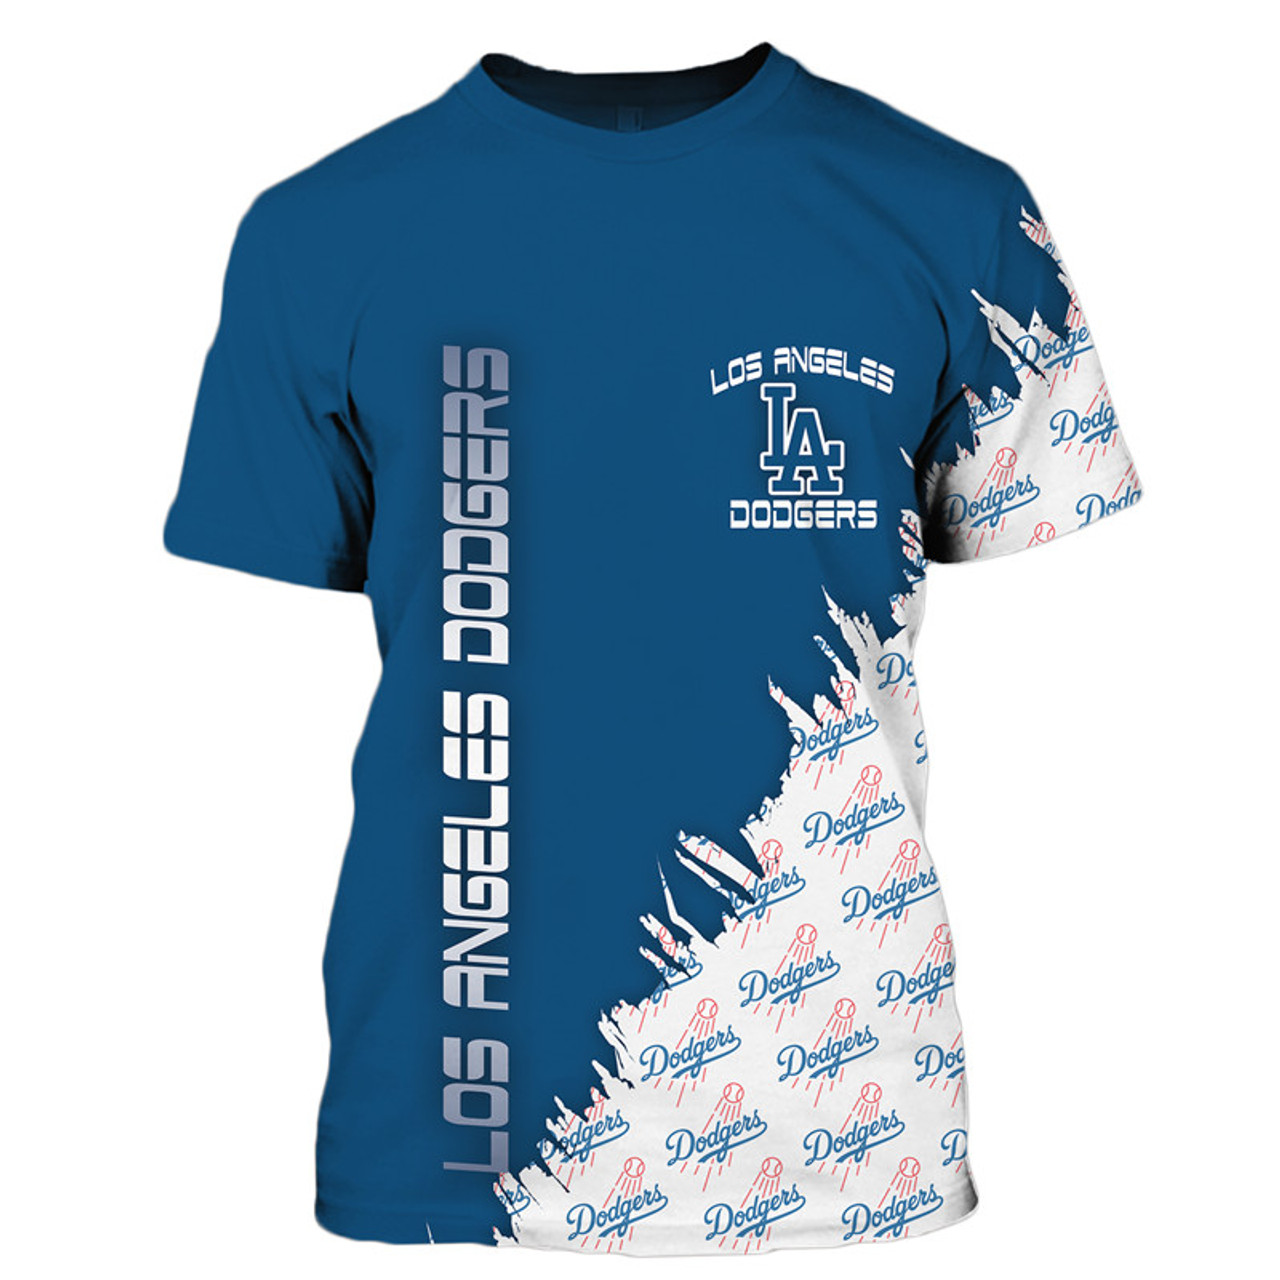 **(OFFICIAL-M.L.B.LOS-ANGELES-DODGERS-TEAM-TEES/NICE-CUSTOM-DETAILED-3D-GRAPHIC-PRINTED/PREMIUM-ALL-OVER-DOUBLE-SIDED-PRINT/OFFICIAL-DODGERS-TEAM-COLORS & CLASSIC-DODGERS-BASEBALL-3D-GRAPHIC-LOGOS/PREMIUM-CUSTOM-M.L.B.OFFICIAL-DODGERS-TEAM-TEES)**